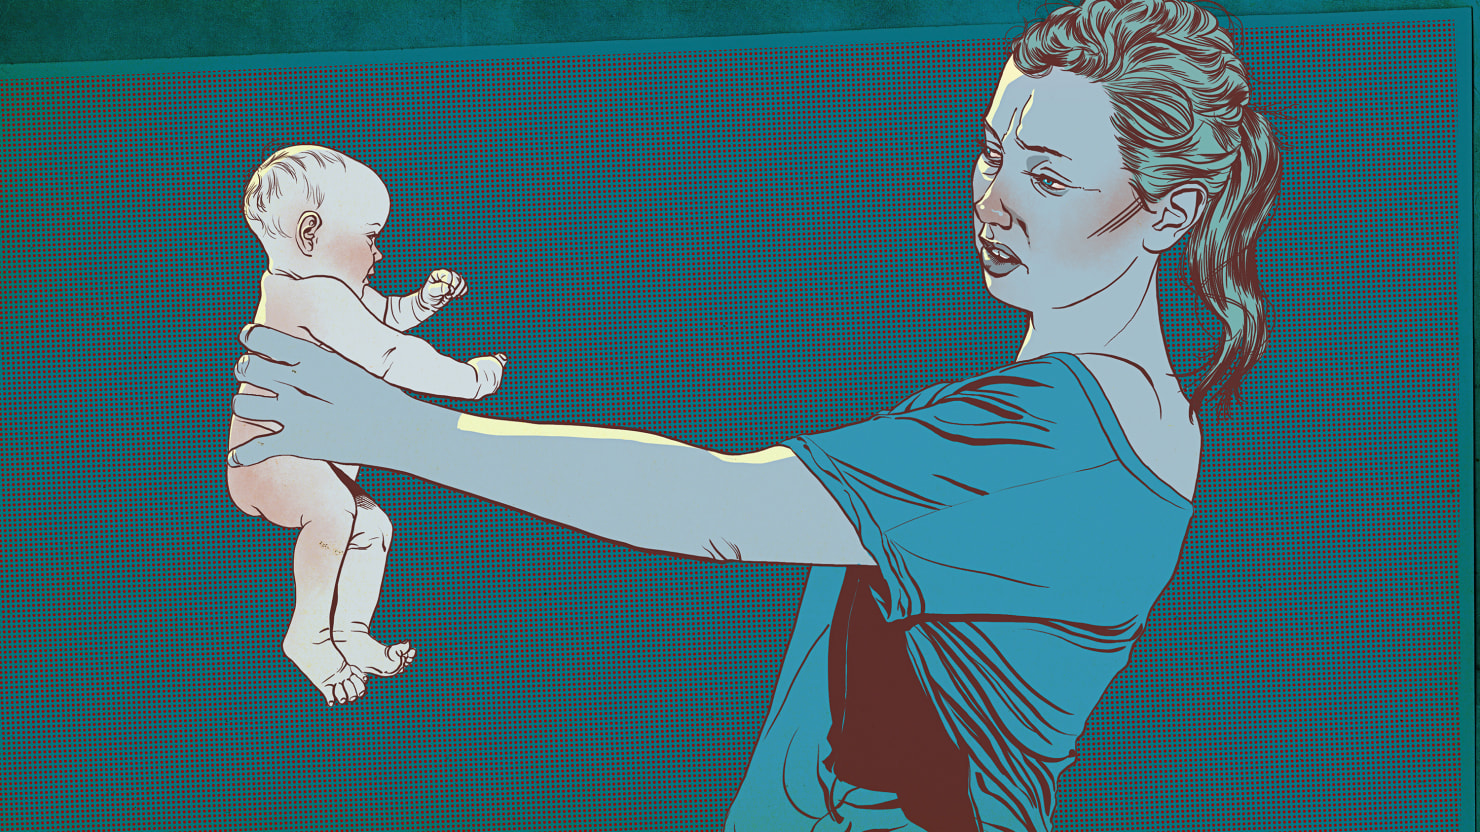 illustration of mom holding child at arm's length in blue and maroon postpartum depression zulresso fda approved expensive drug anxiety